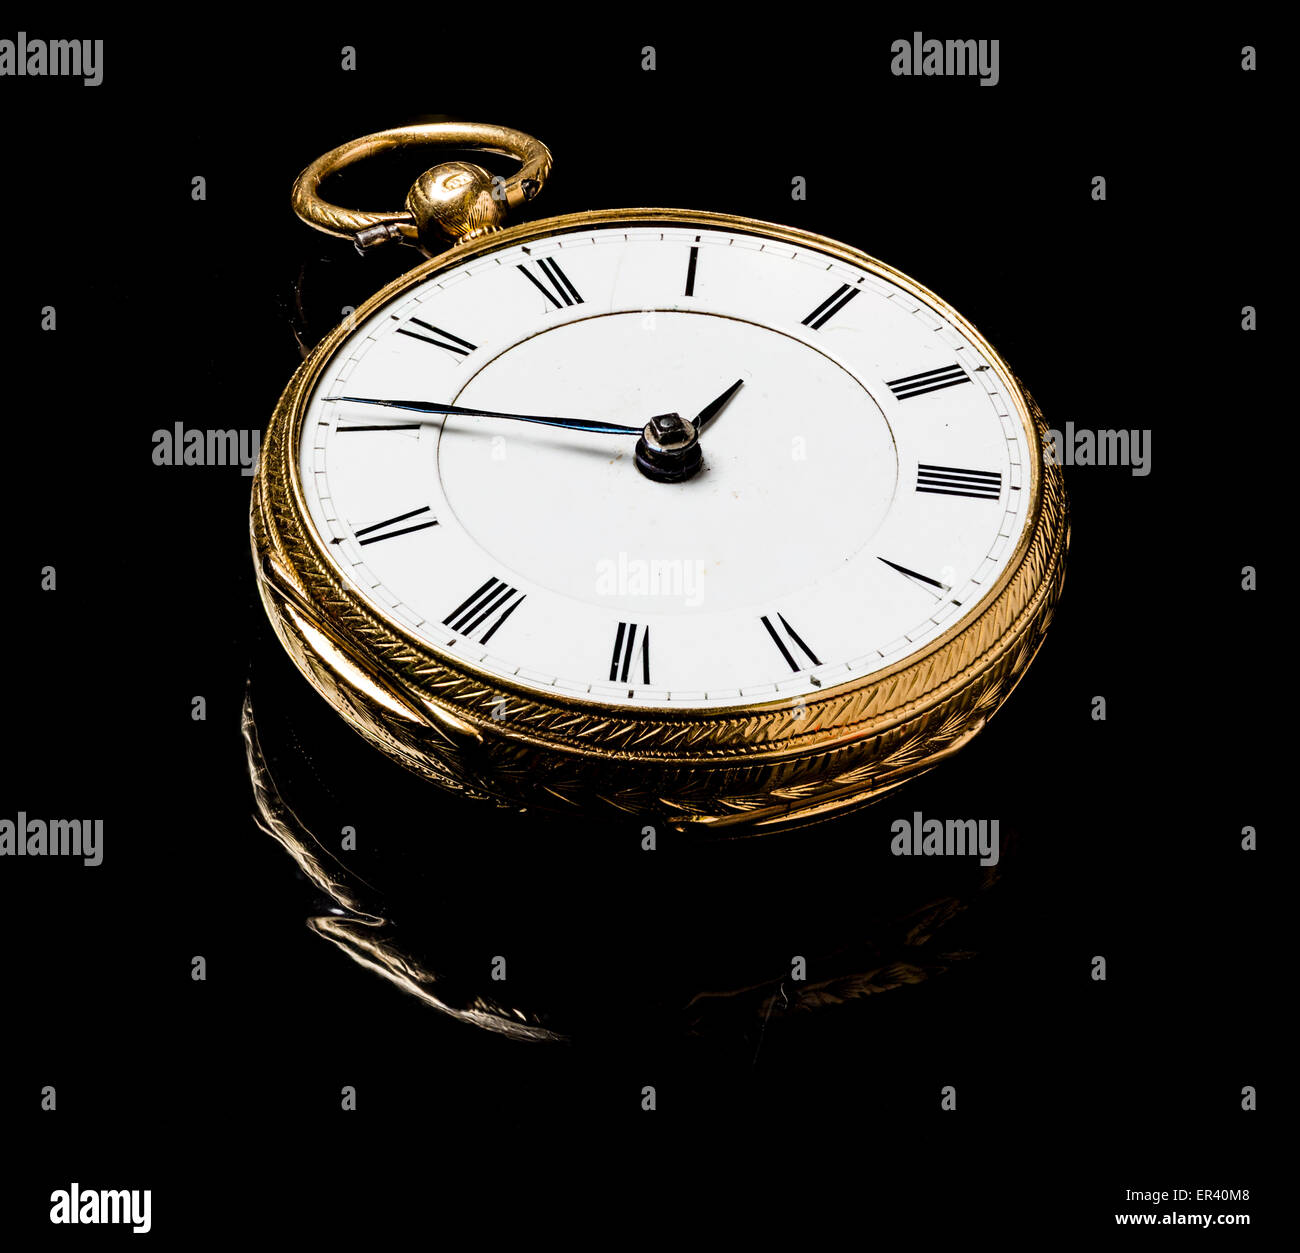 A pocket watch - Stock Image